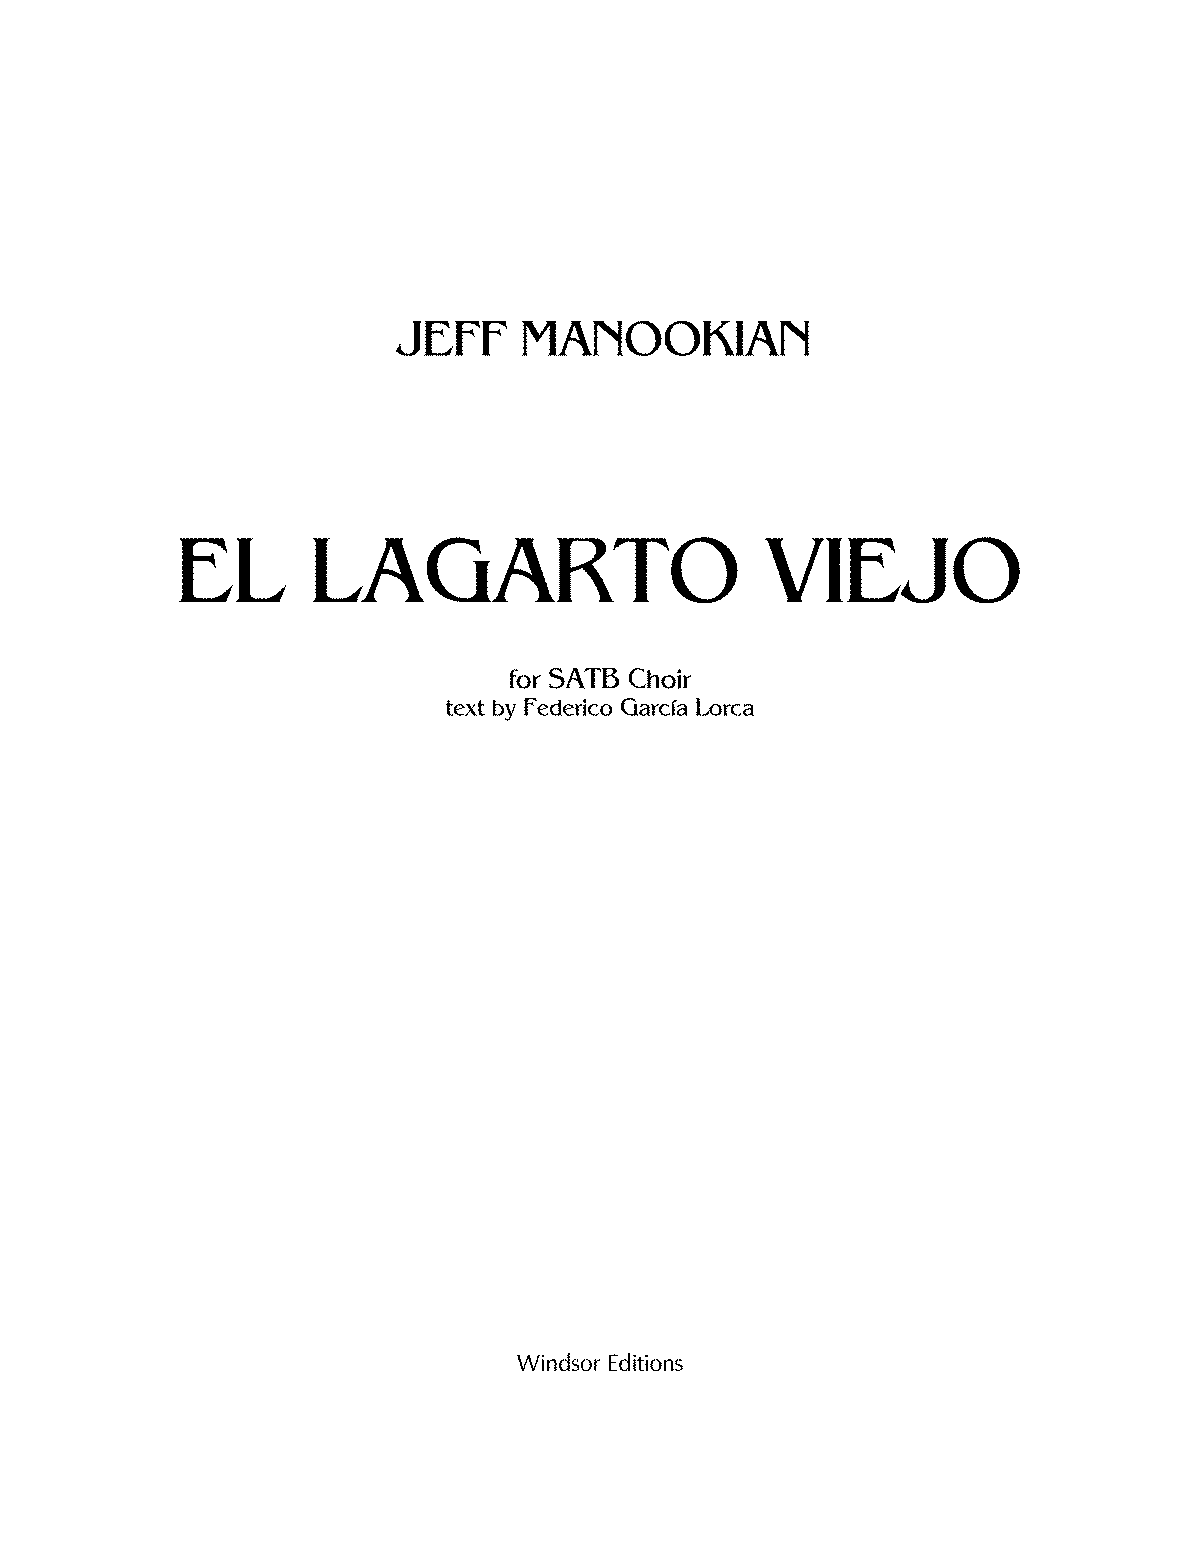 PMLP118525-EL LARGARTO VIEJO - for SATB Choir.pdf